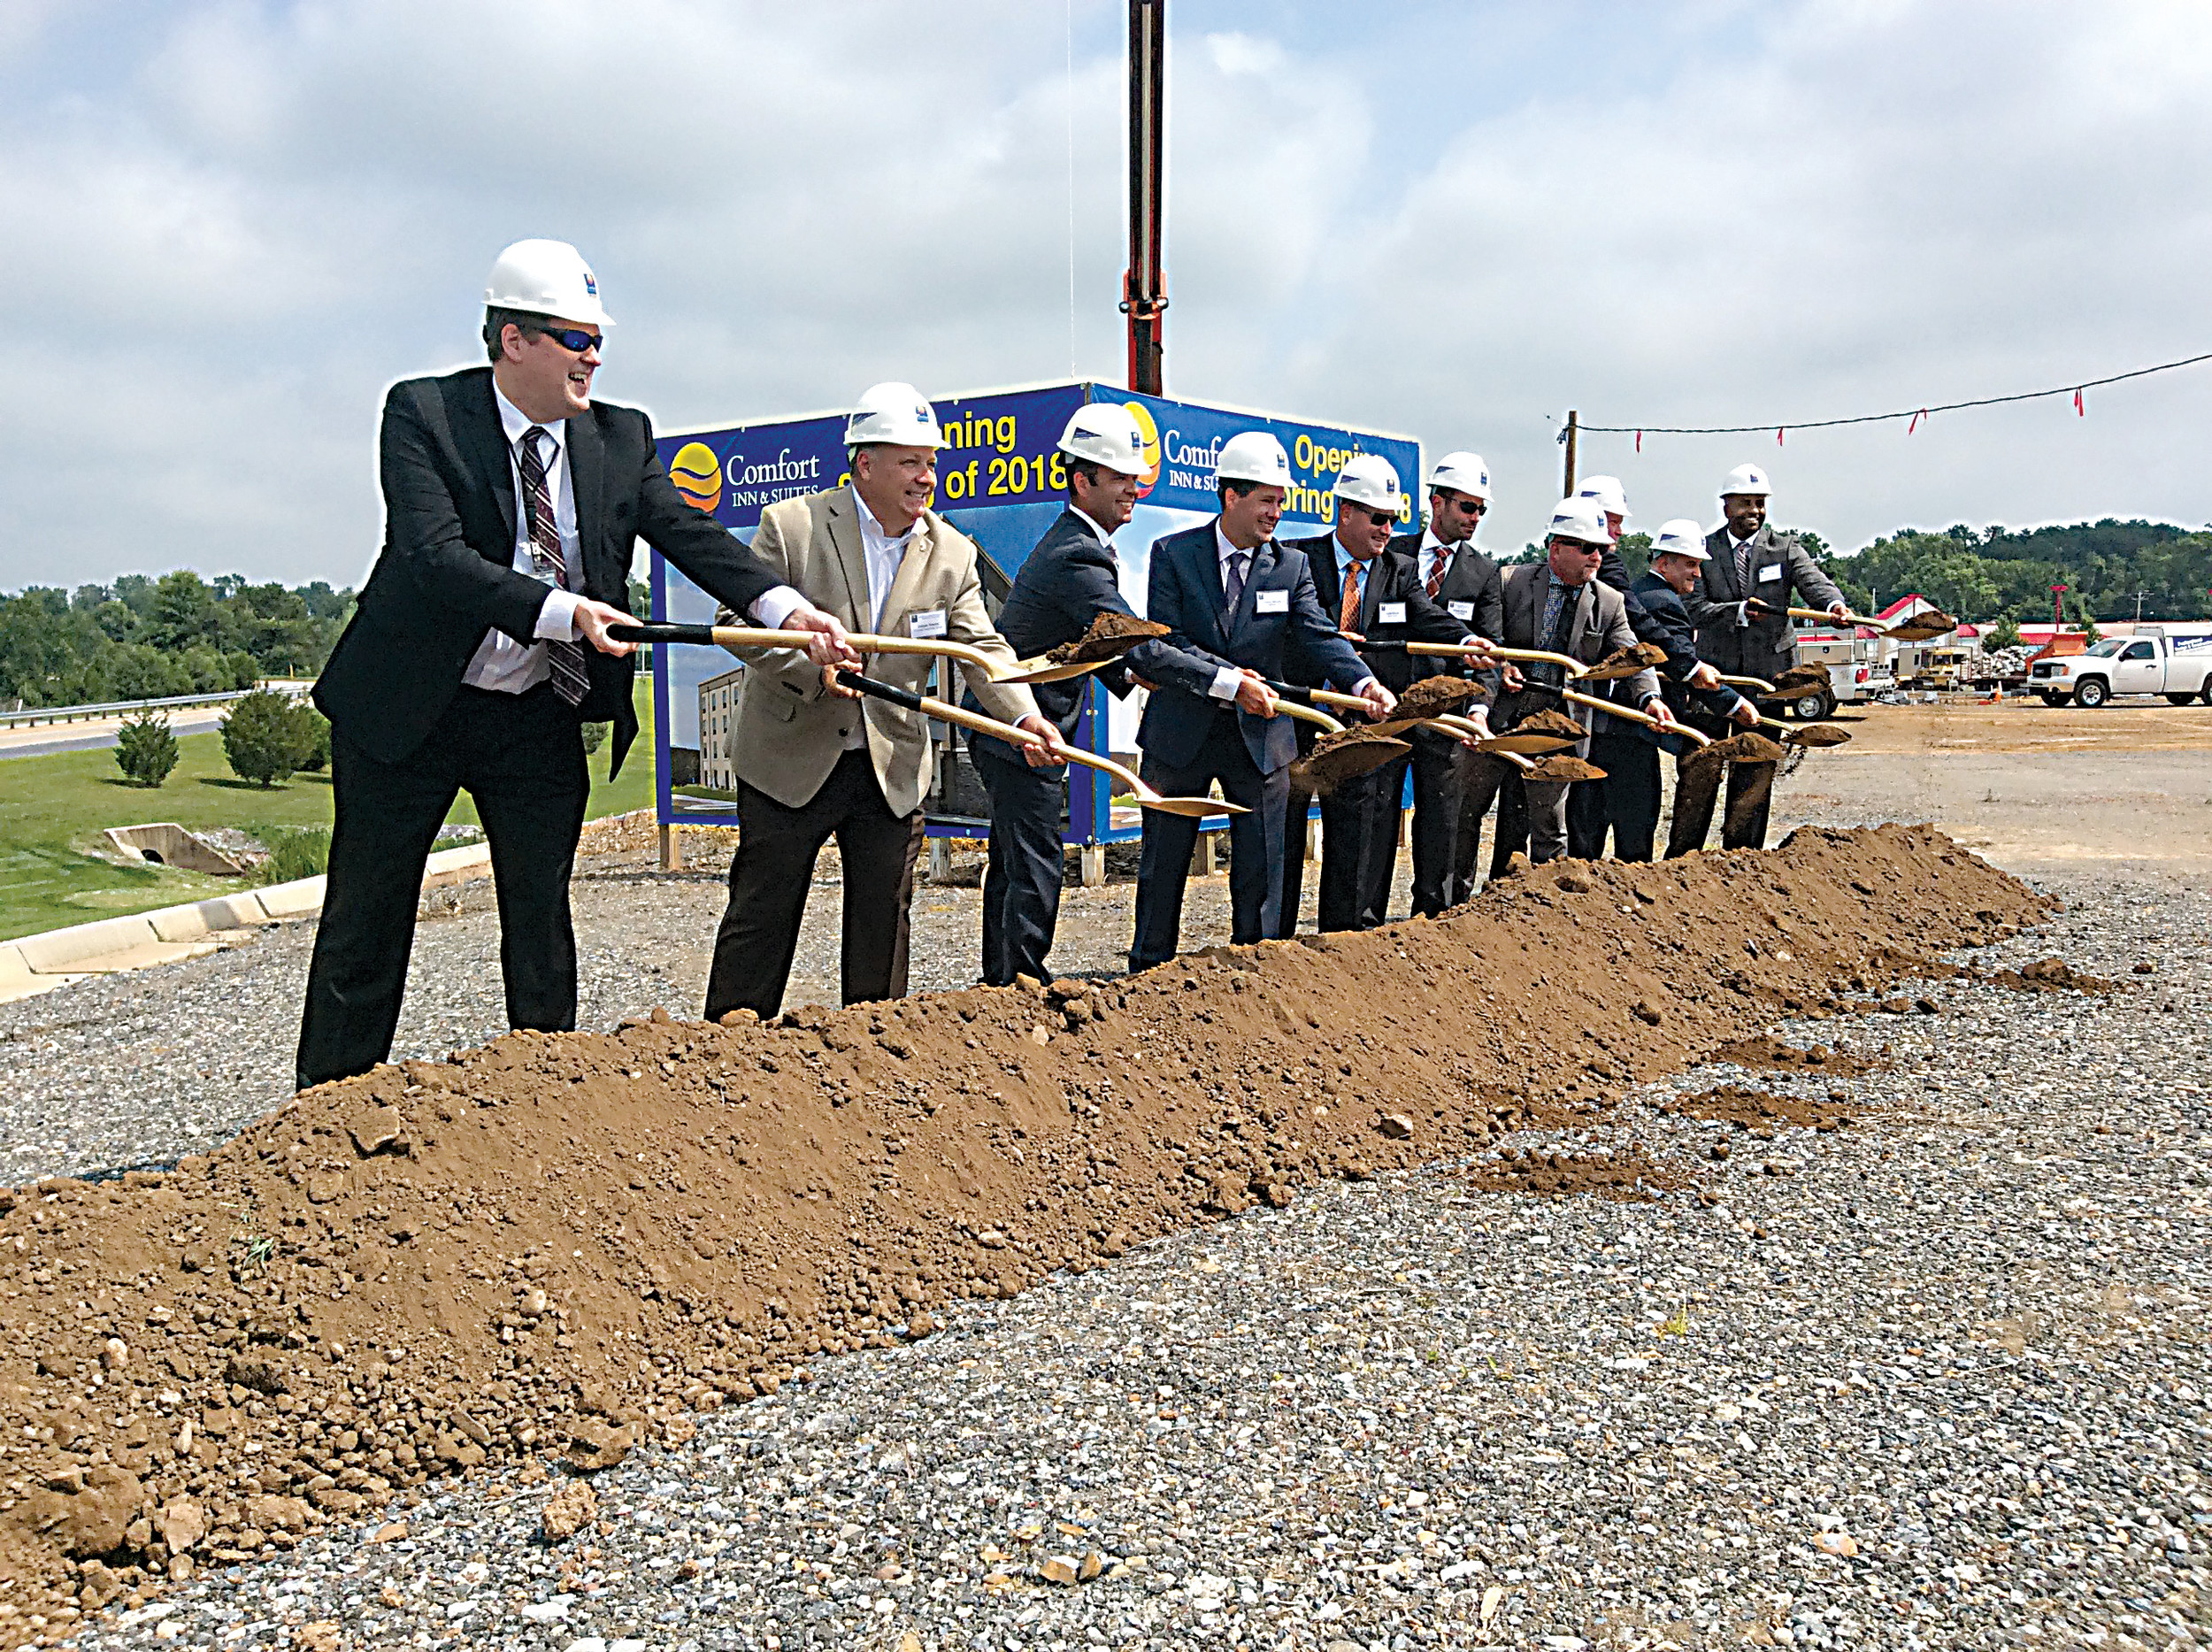 Officials with Harrisburg International Airport, local government, and developers toss dirt during the ceremonial groundbreaking for the new 87-room Comfort Inn & Suites Harrisburg Airport at the Linden Centre shopping complex along Route 230 in Lower Swatara Township on Tuesday, July 18.